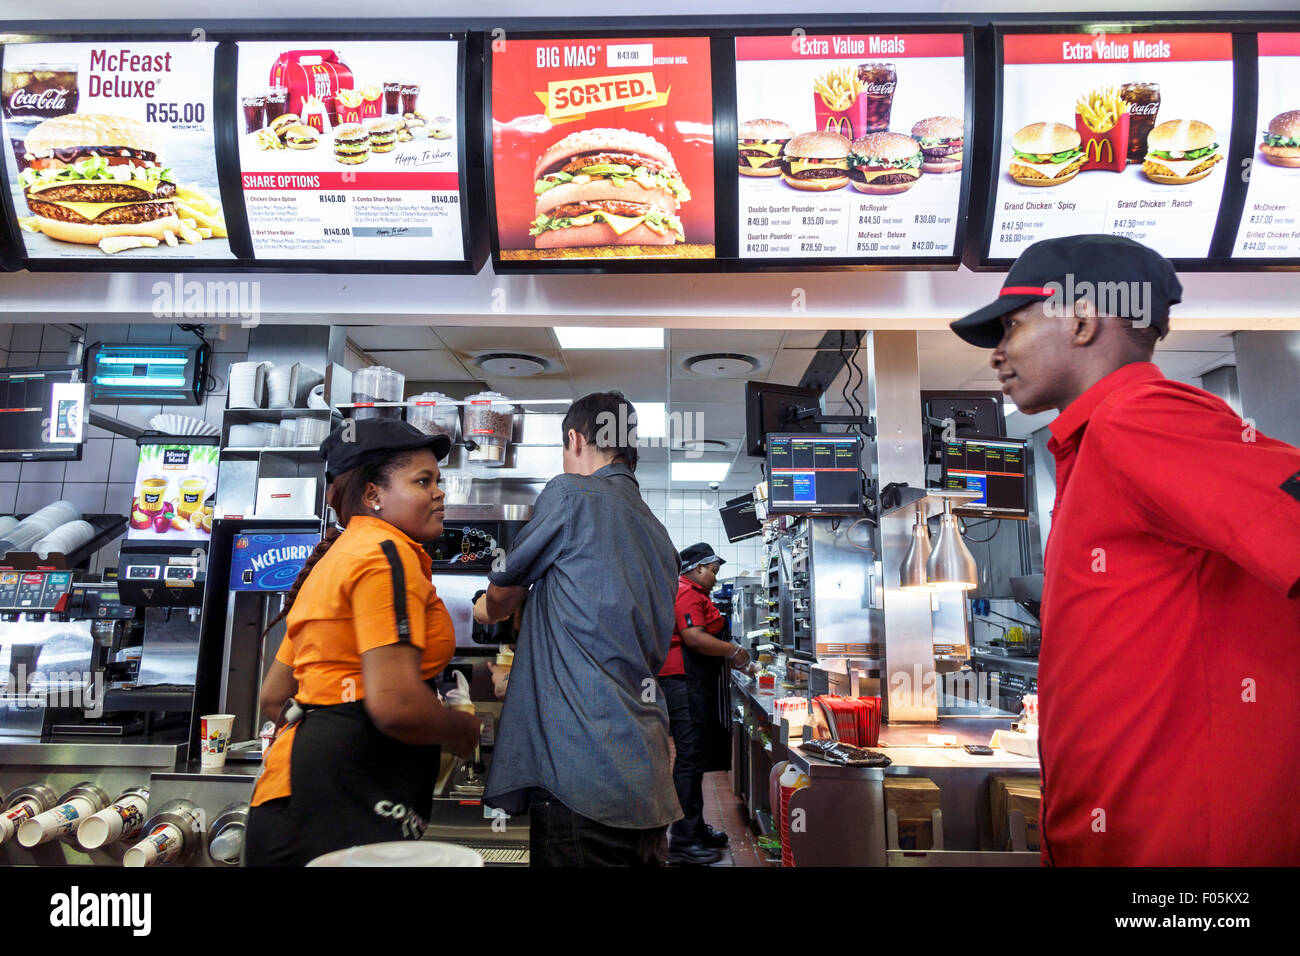 mcdonalds in south africa The latest tweets from mcdonald's s africa (@mcdonalds_sa) the official mcdonald's south africa twitter page we're here to listen and learn from all of our.